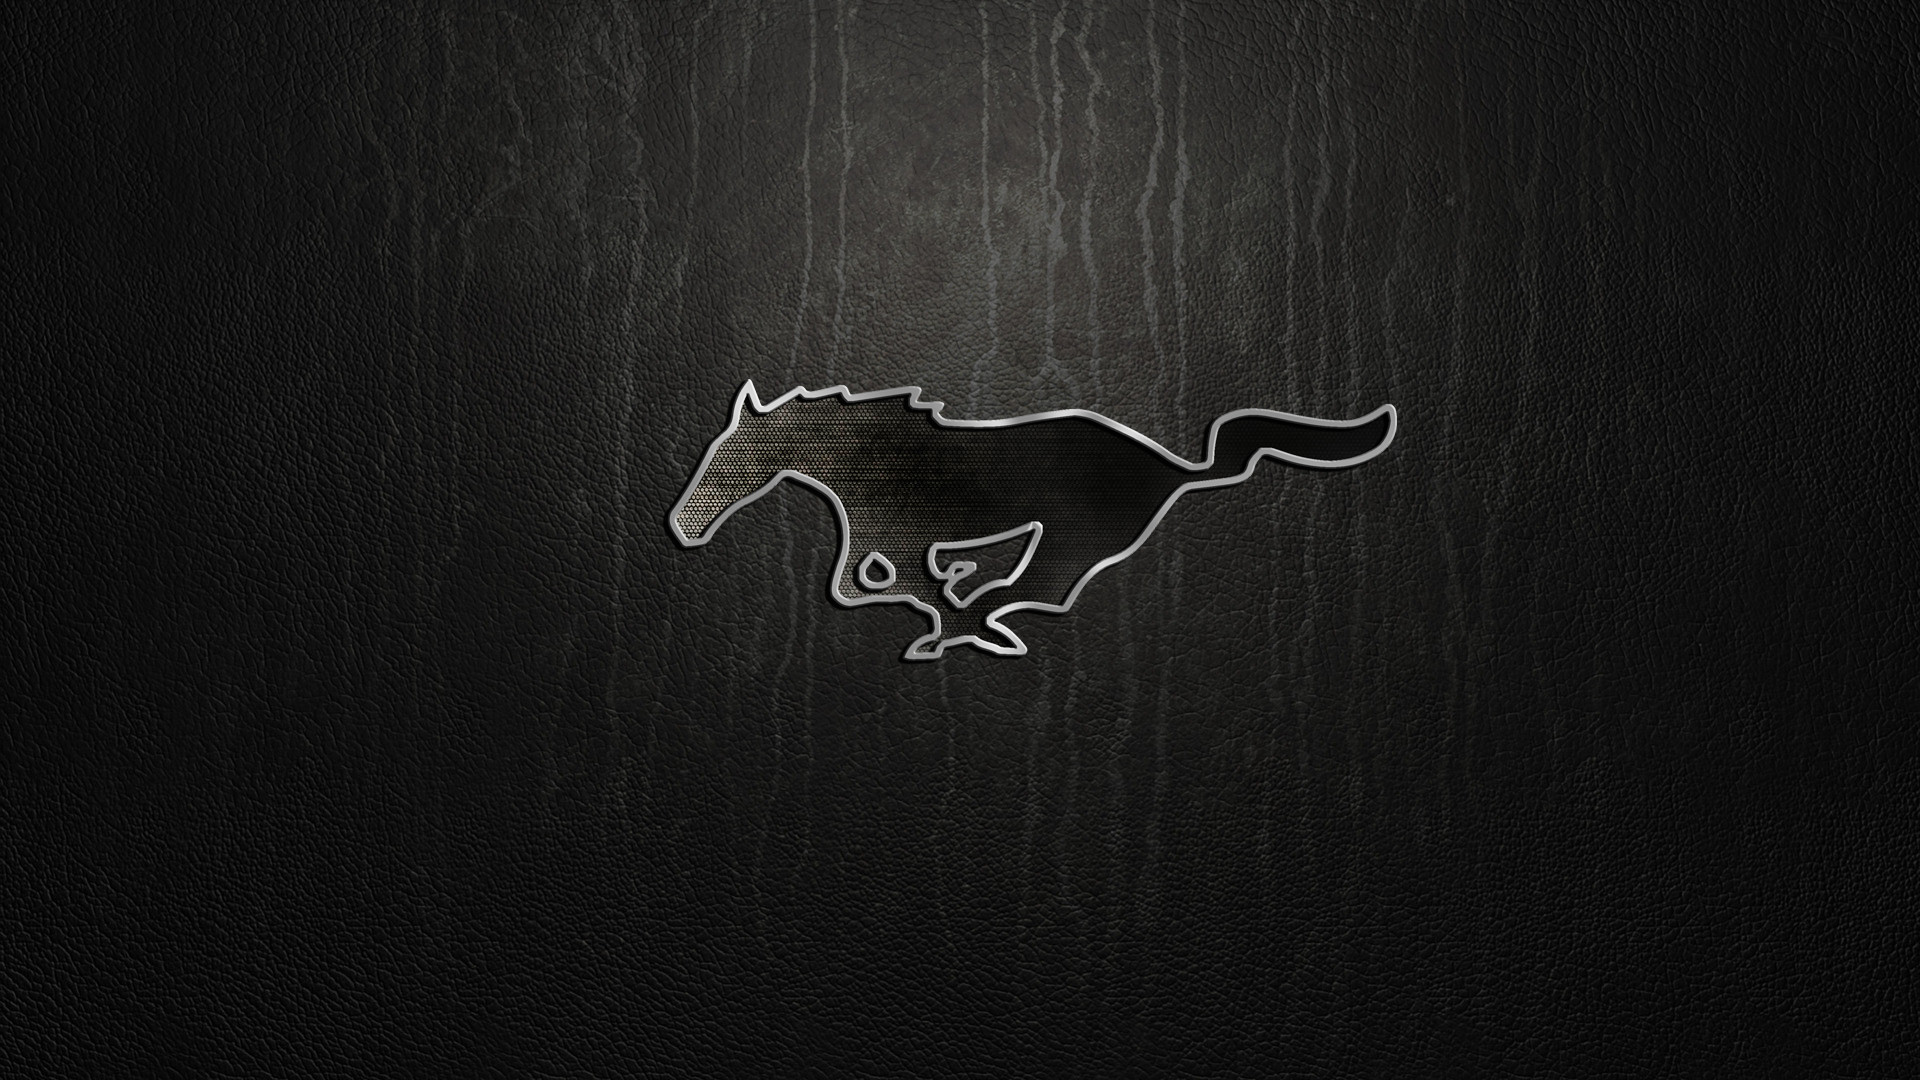 1920x1080 Mustang Logo Wallpaper For Iphone #gtc